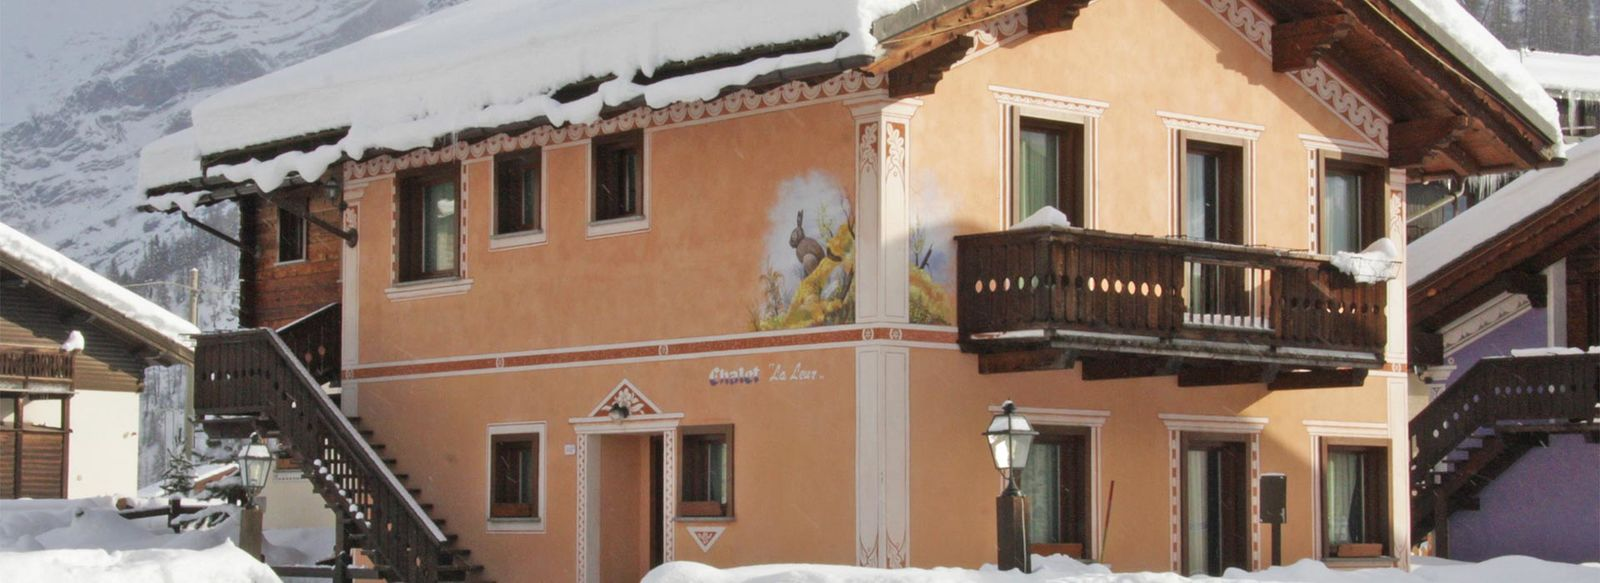 Appartamenti in Alta Valtellina, tra sport e shopping